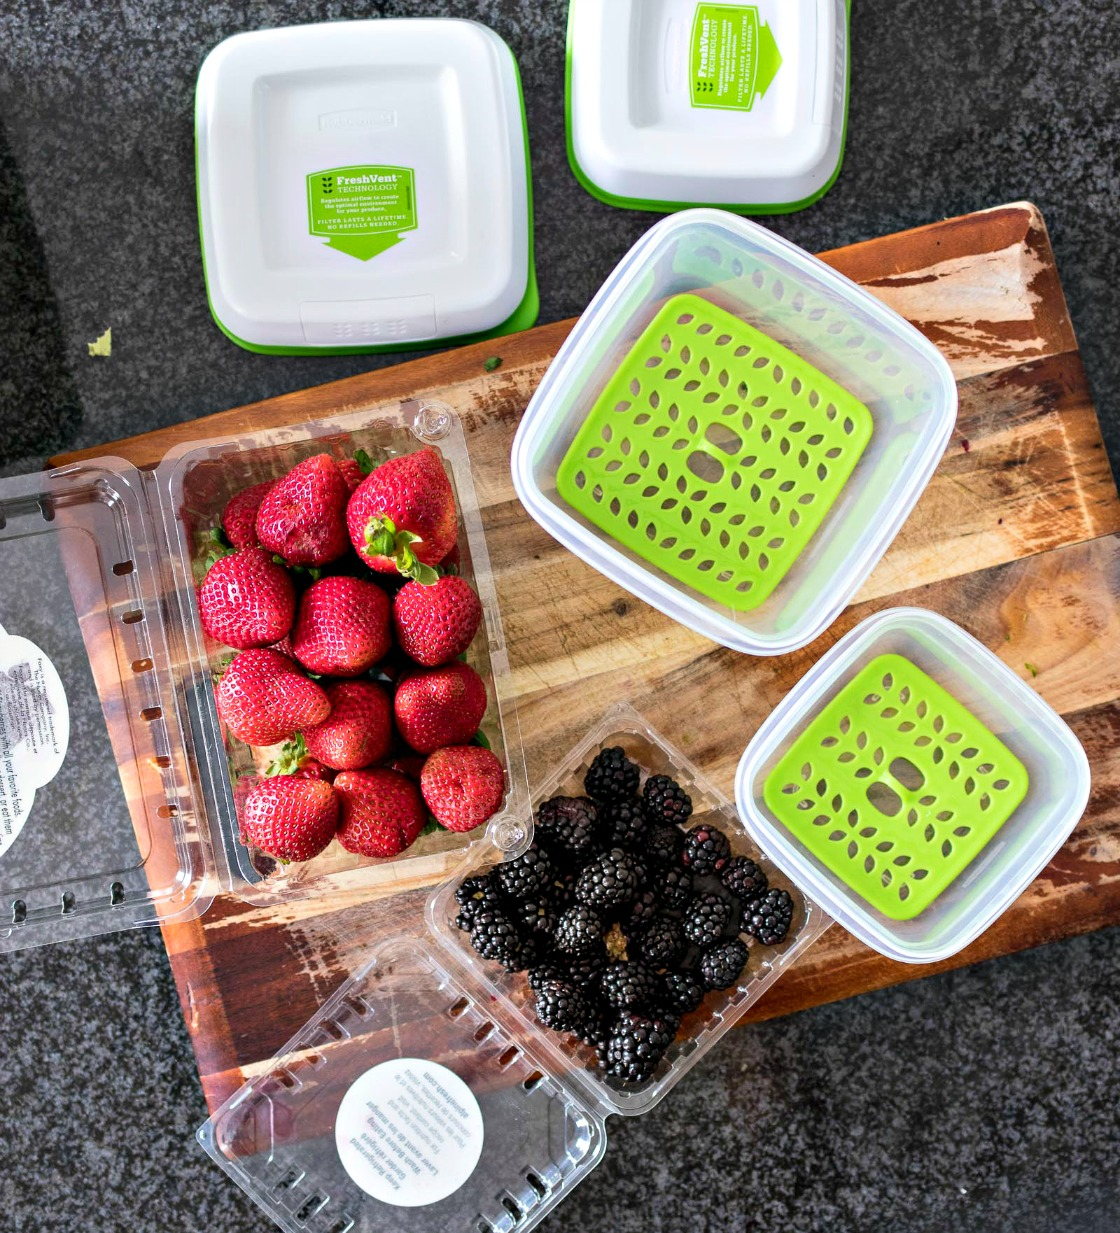 Open containers of strawberries and blackberries next to freshworks produce savers